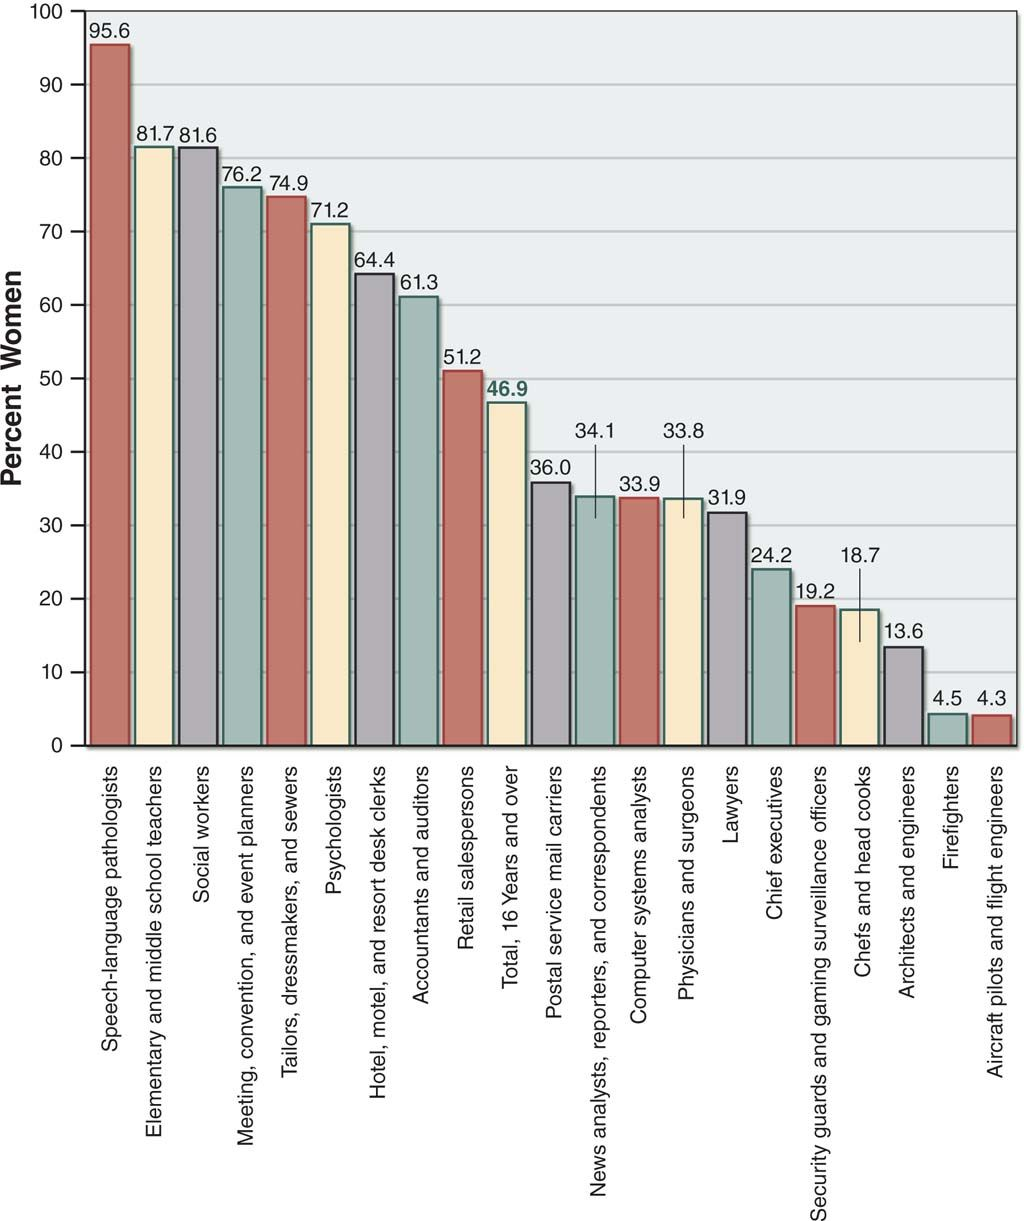 Bar graph showing the percent of women employed in certain